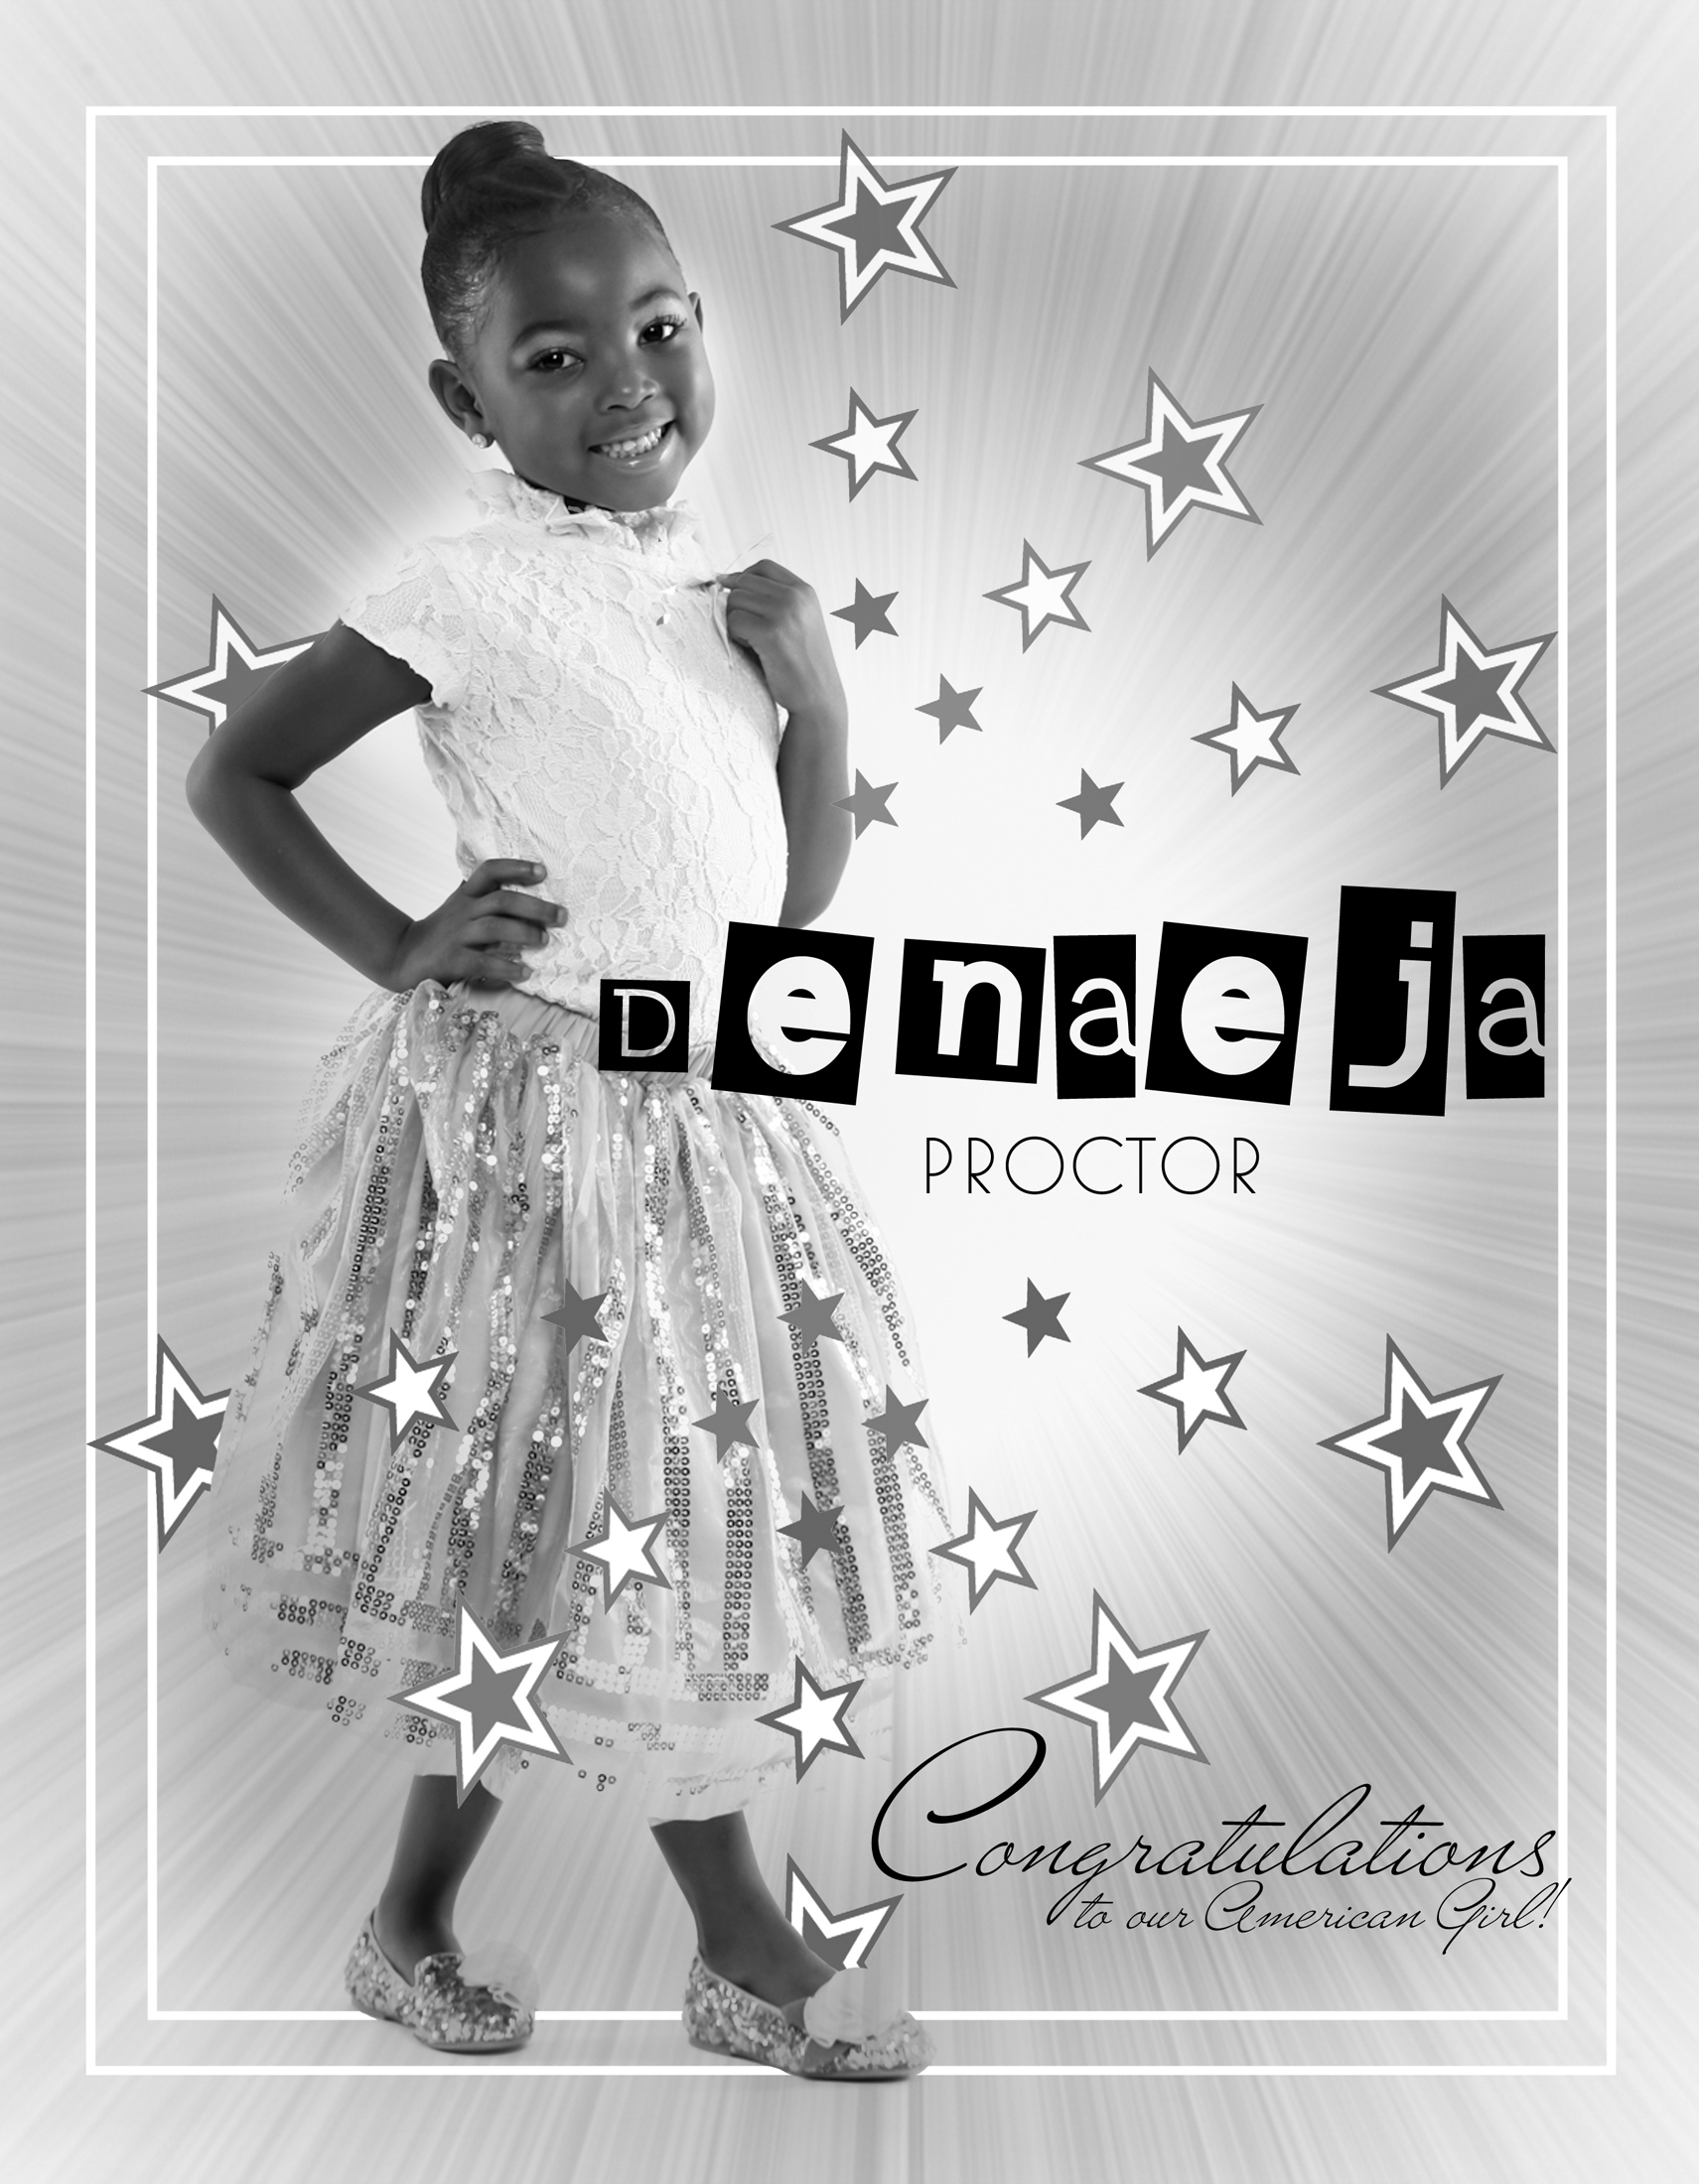 DENAEJA PROCTOR / MISS LITTLE HAWAII